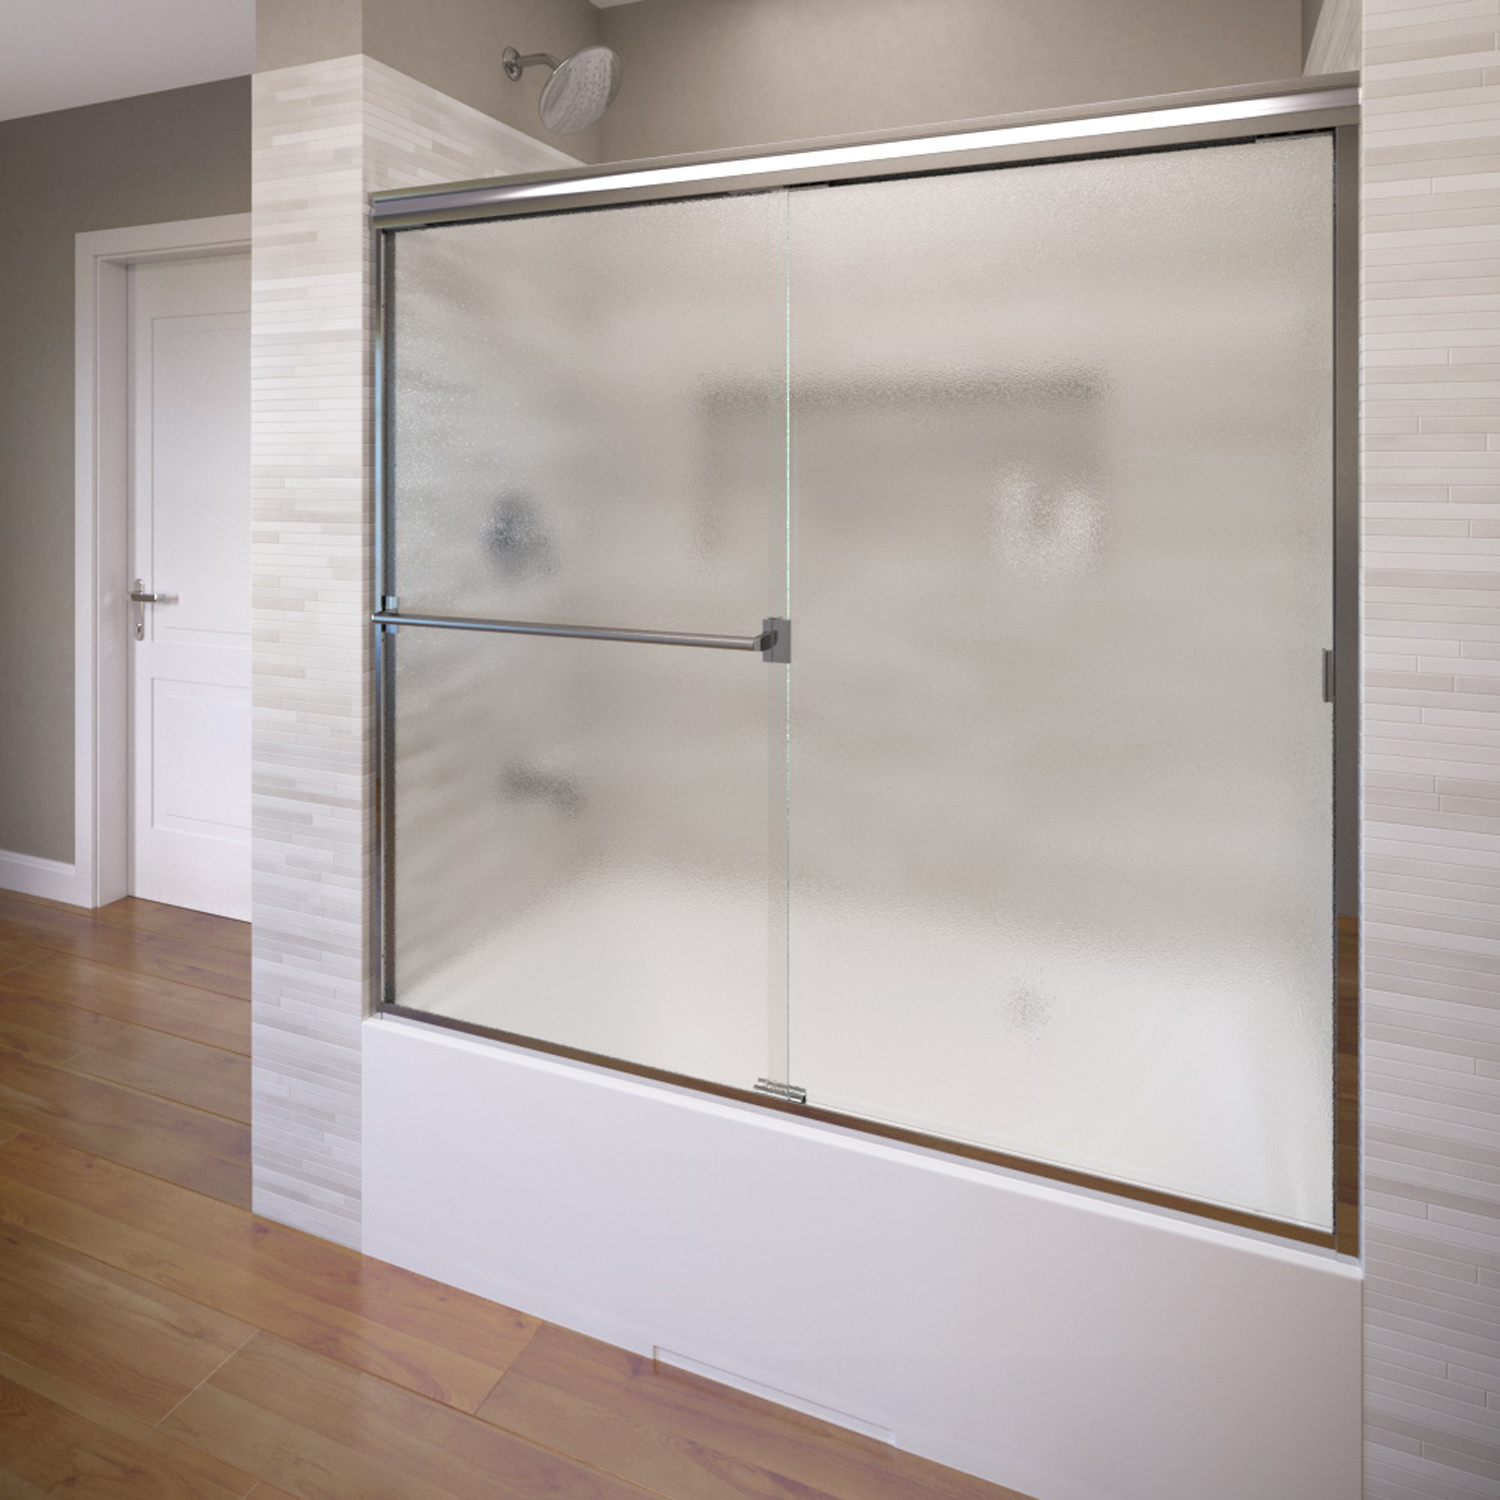 Basco 3400 60 60 Classic Sliding Shower Enclosure With Obscure Glass